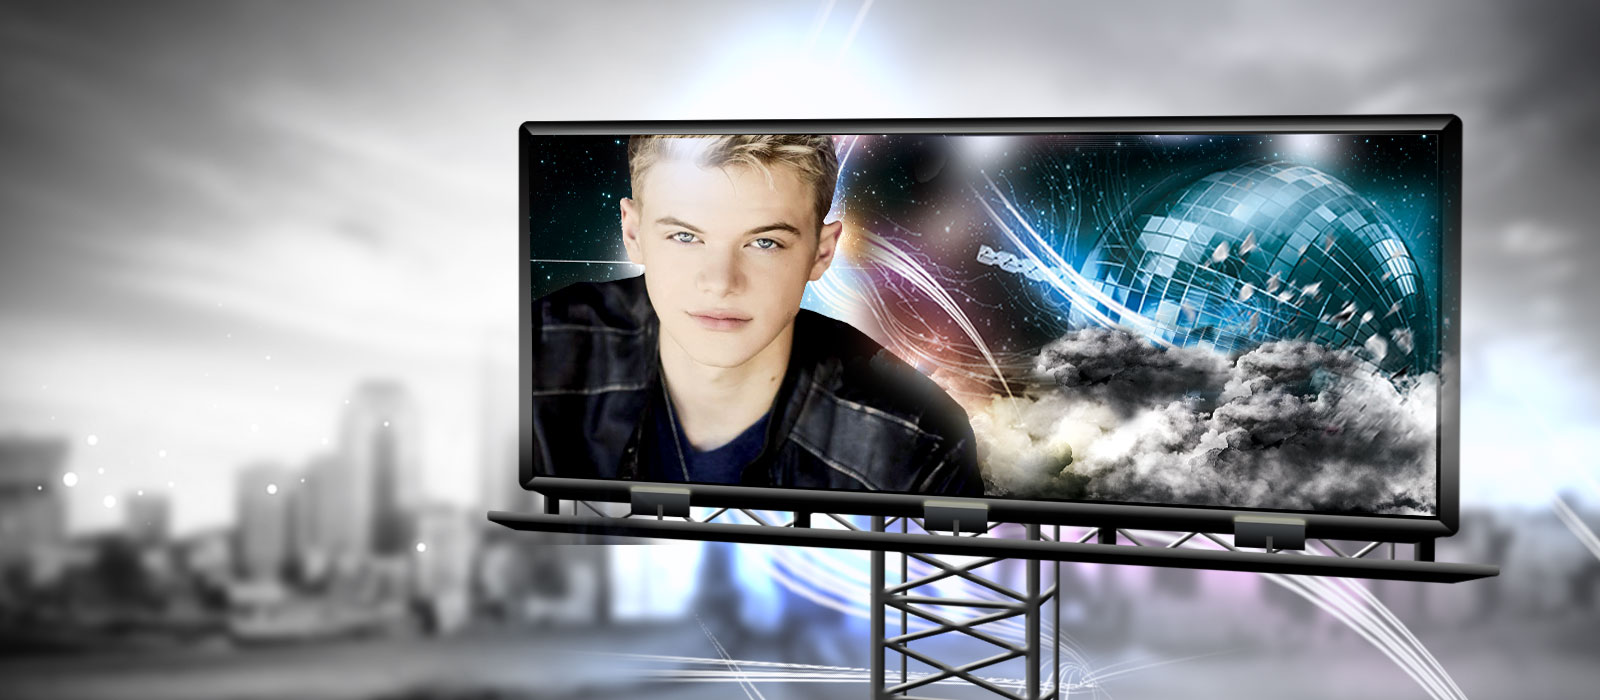 Kenton-Final-Billboard-Slide.jpg